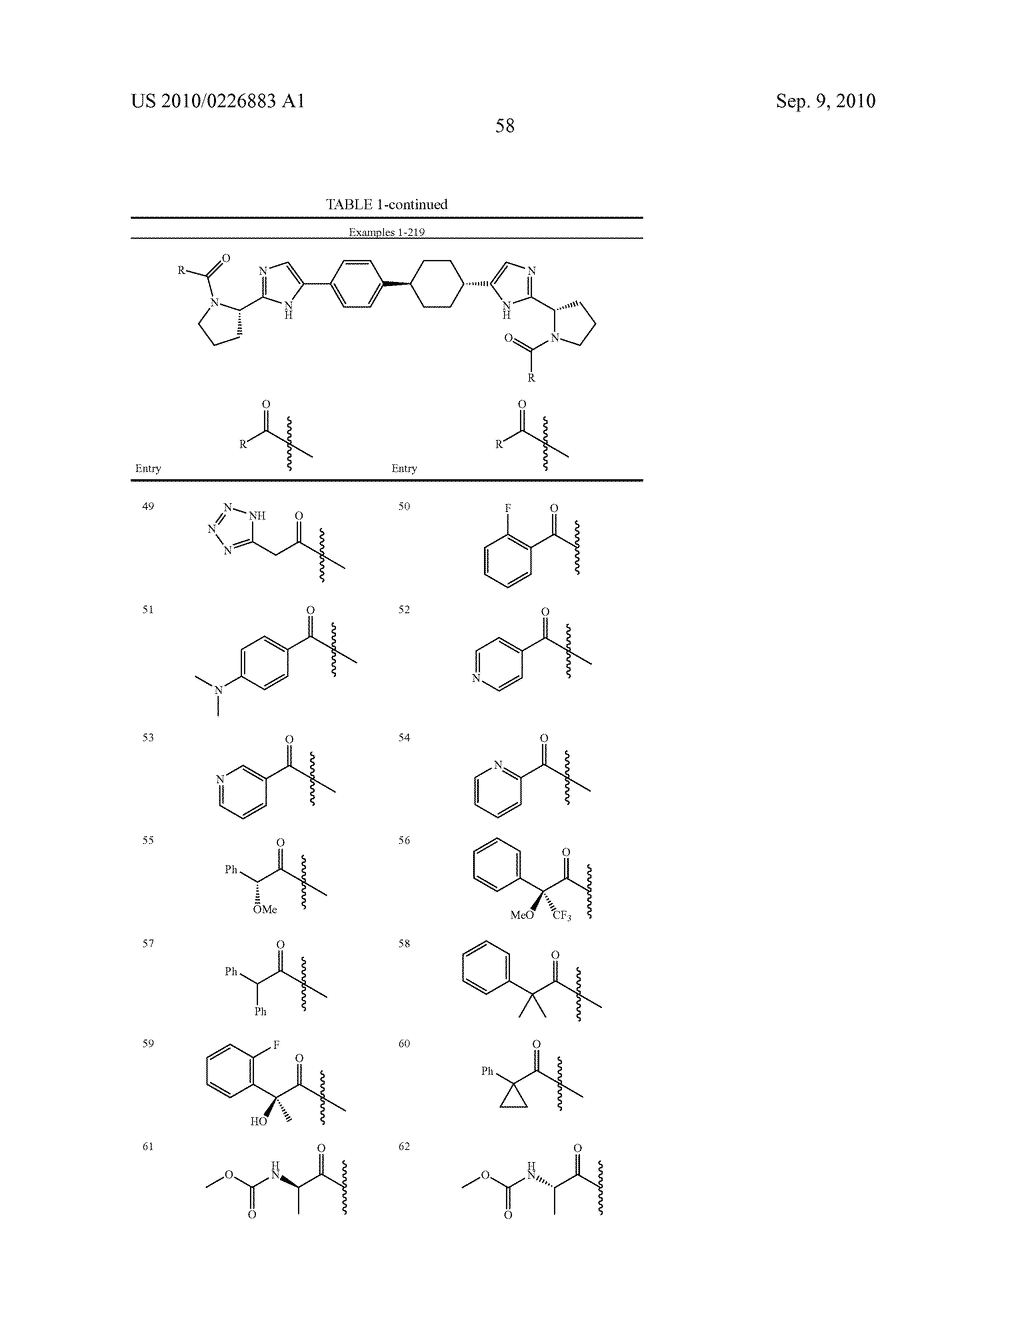 LINKED DIIMIDAZOLE DERIVATIVES - diagram, schematic, and image 59